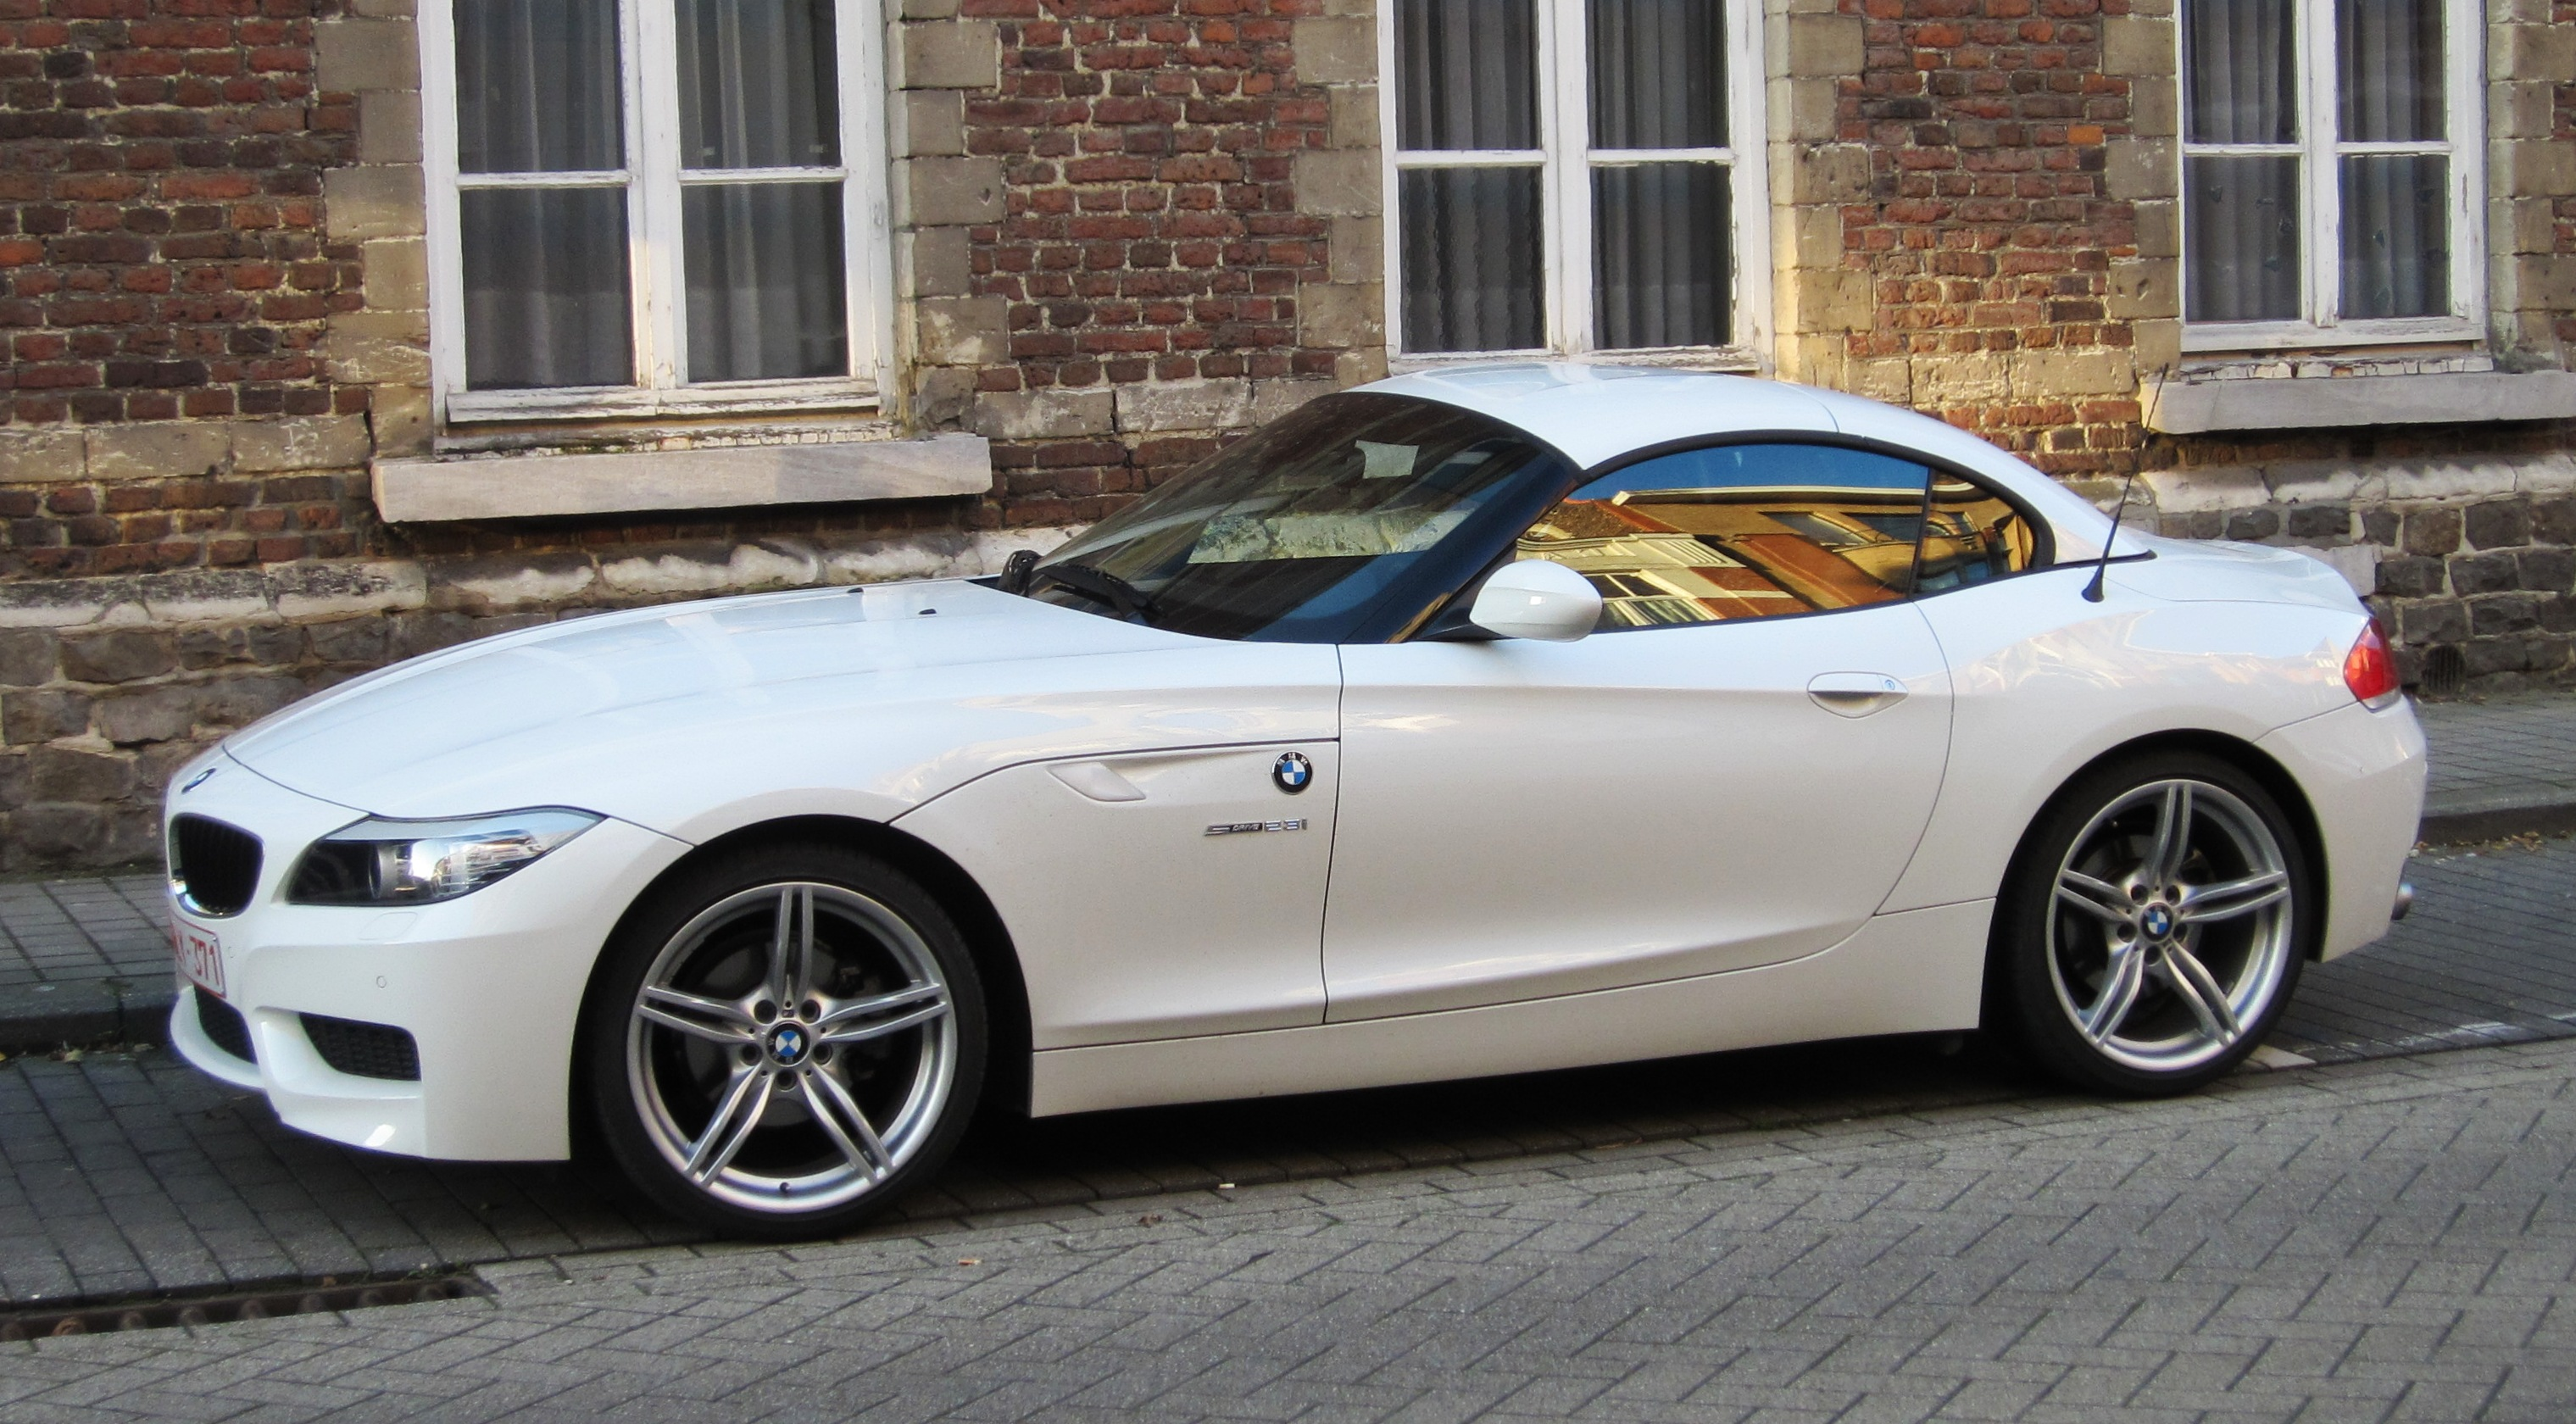 File:BMW Z4 (aka E89) sDrive 23i at St Trond.JPG - Wikimedia Commons